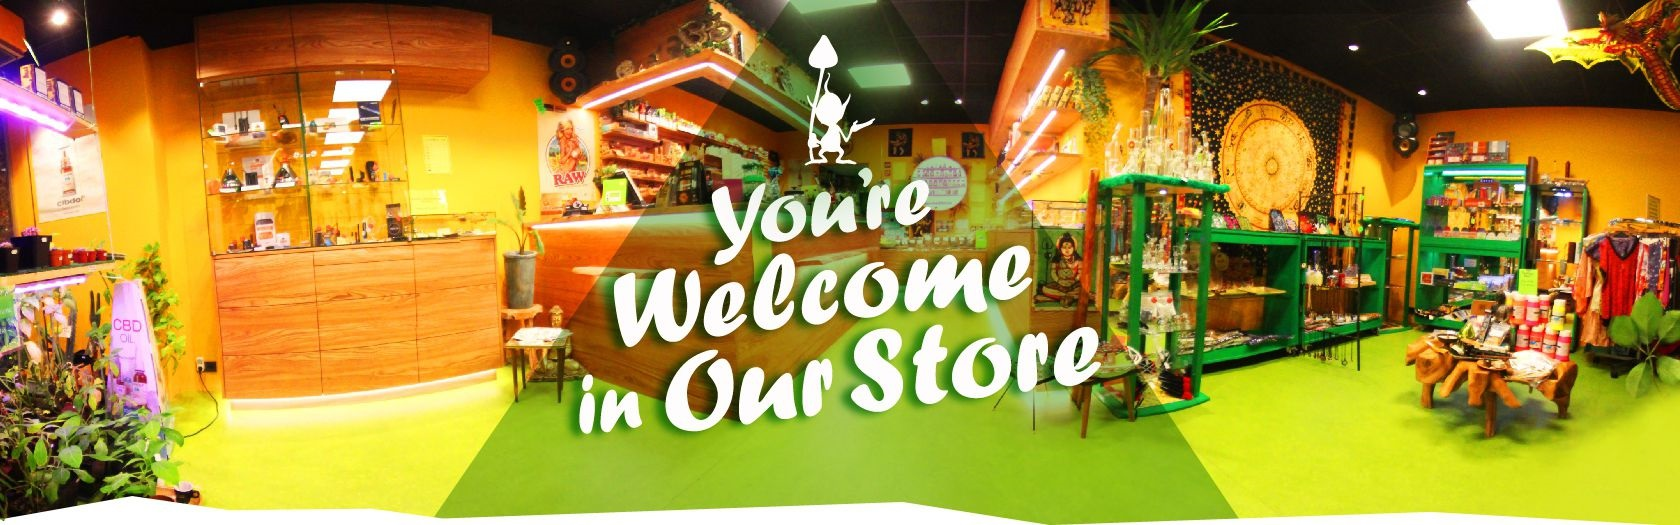 You're Welcome in our Store